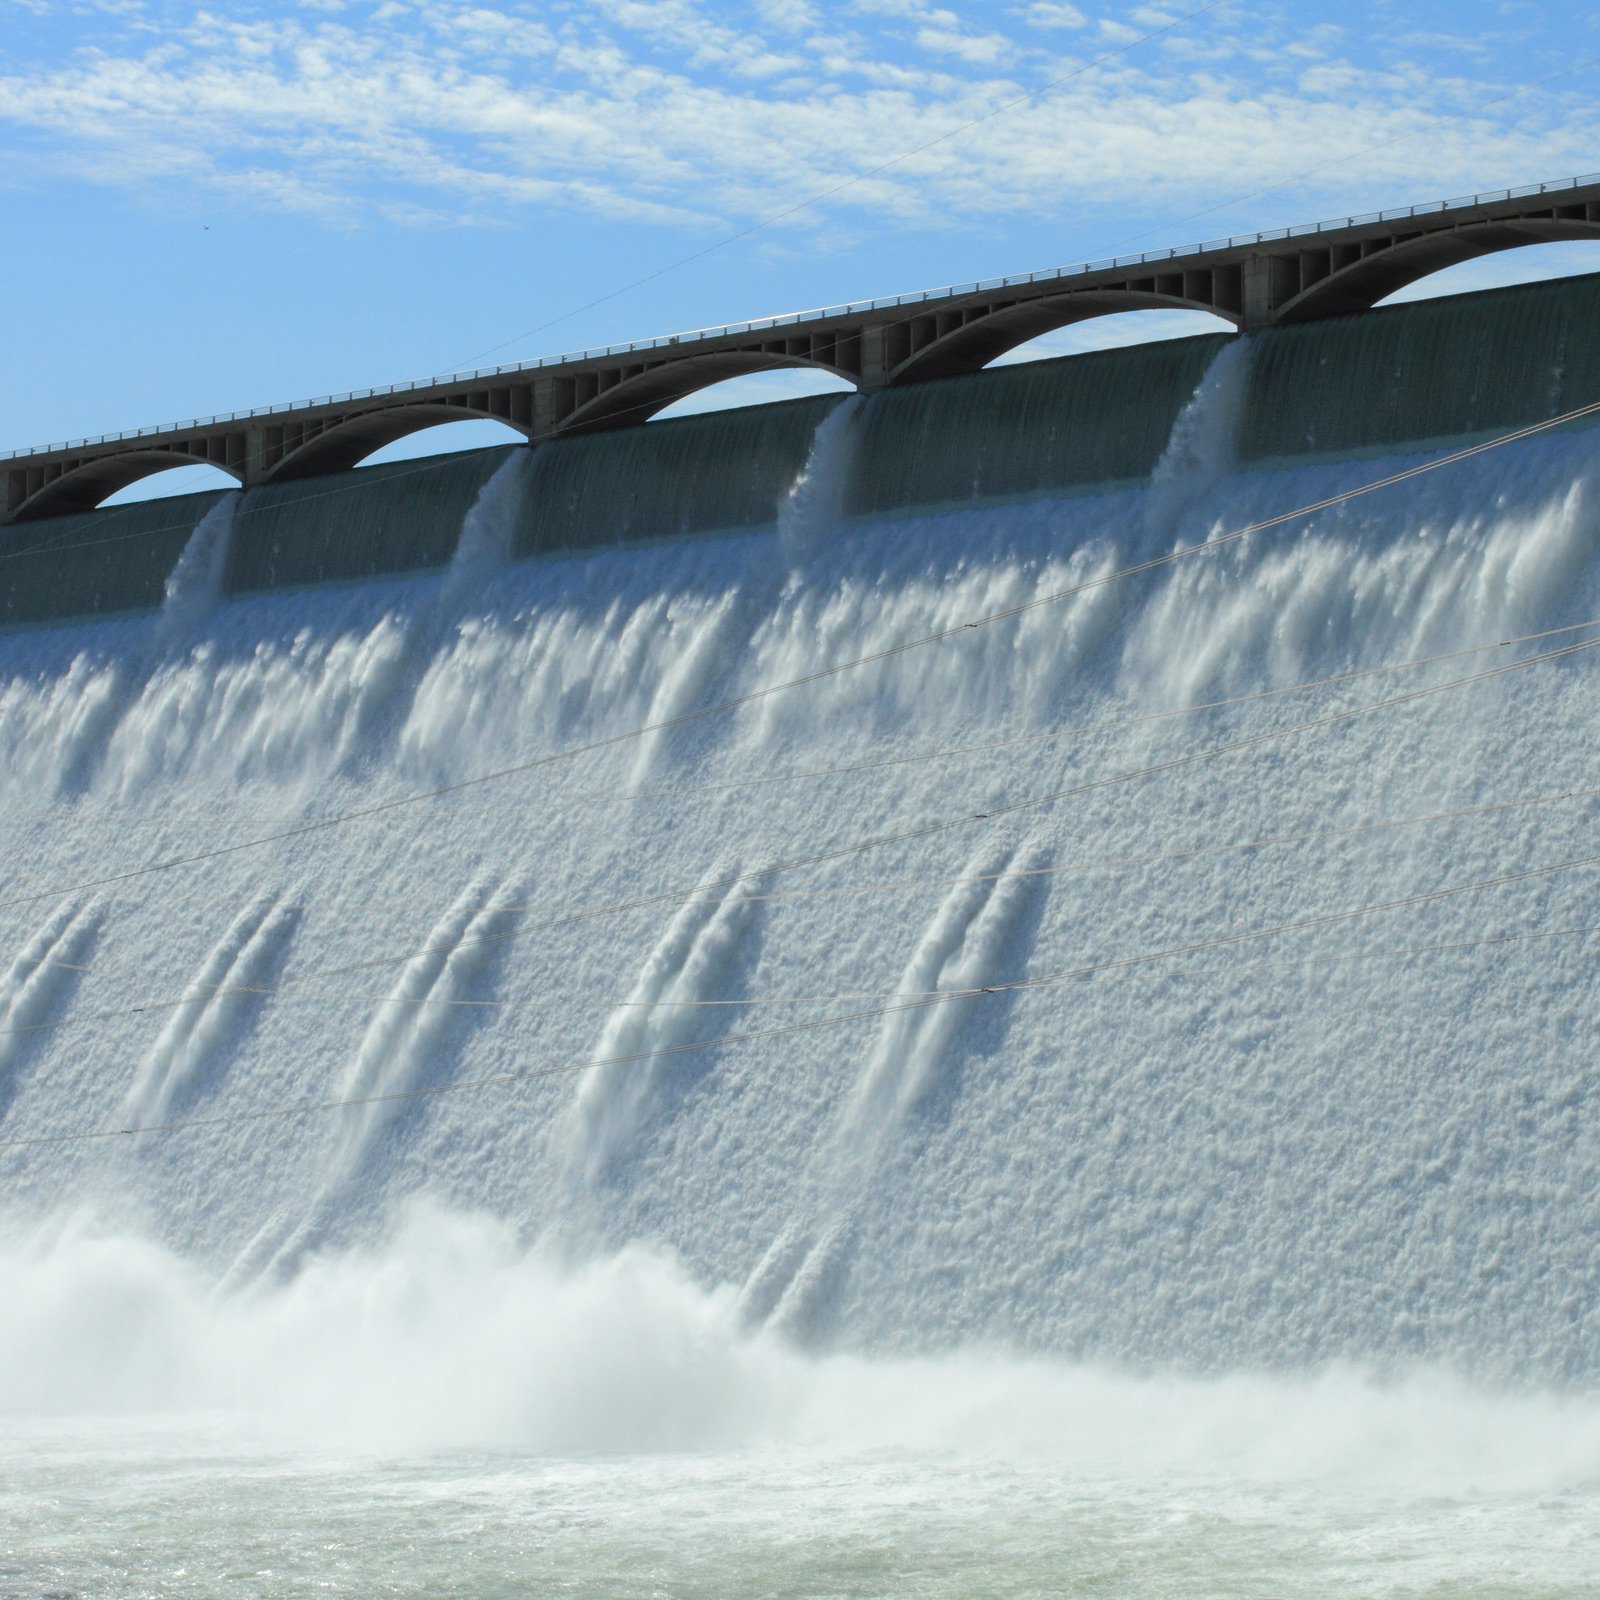 Bitcoin Miners Are Pestering Utility Companies for Cheap Hydro Power